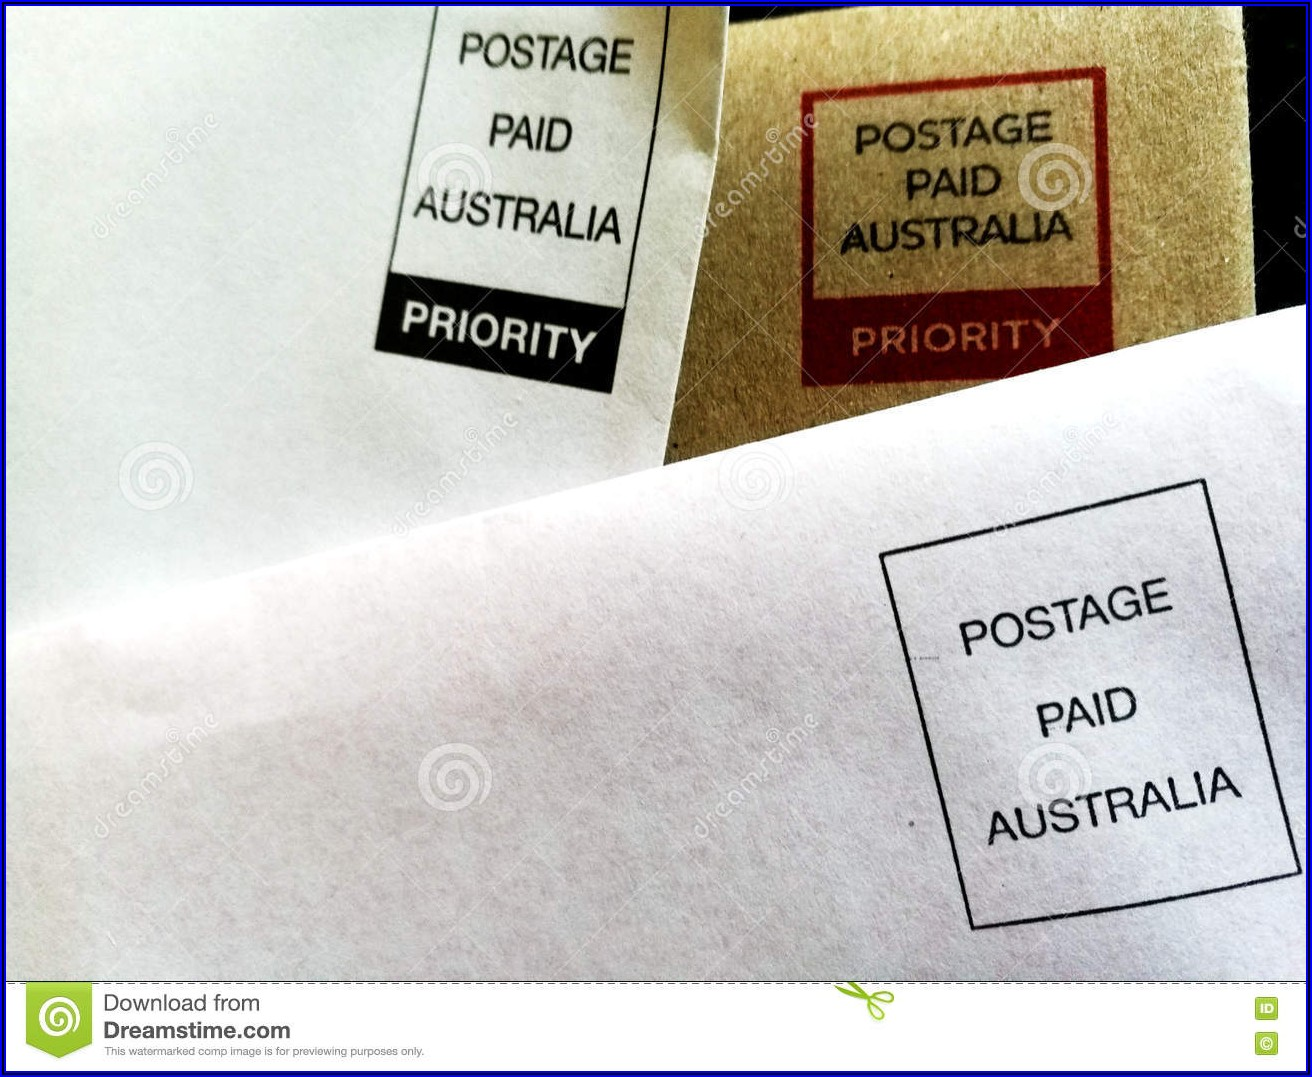 Postage Paid Envelopes Australia